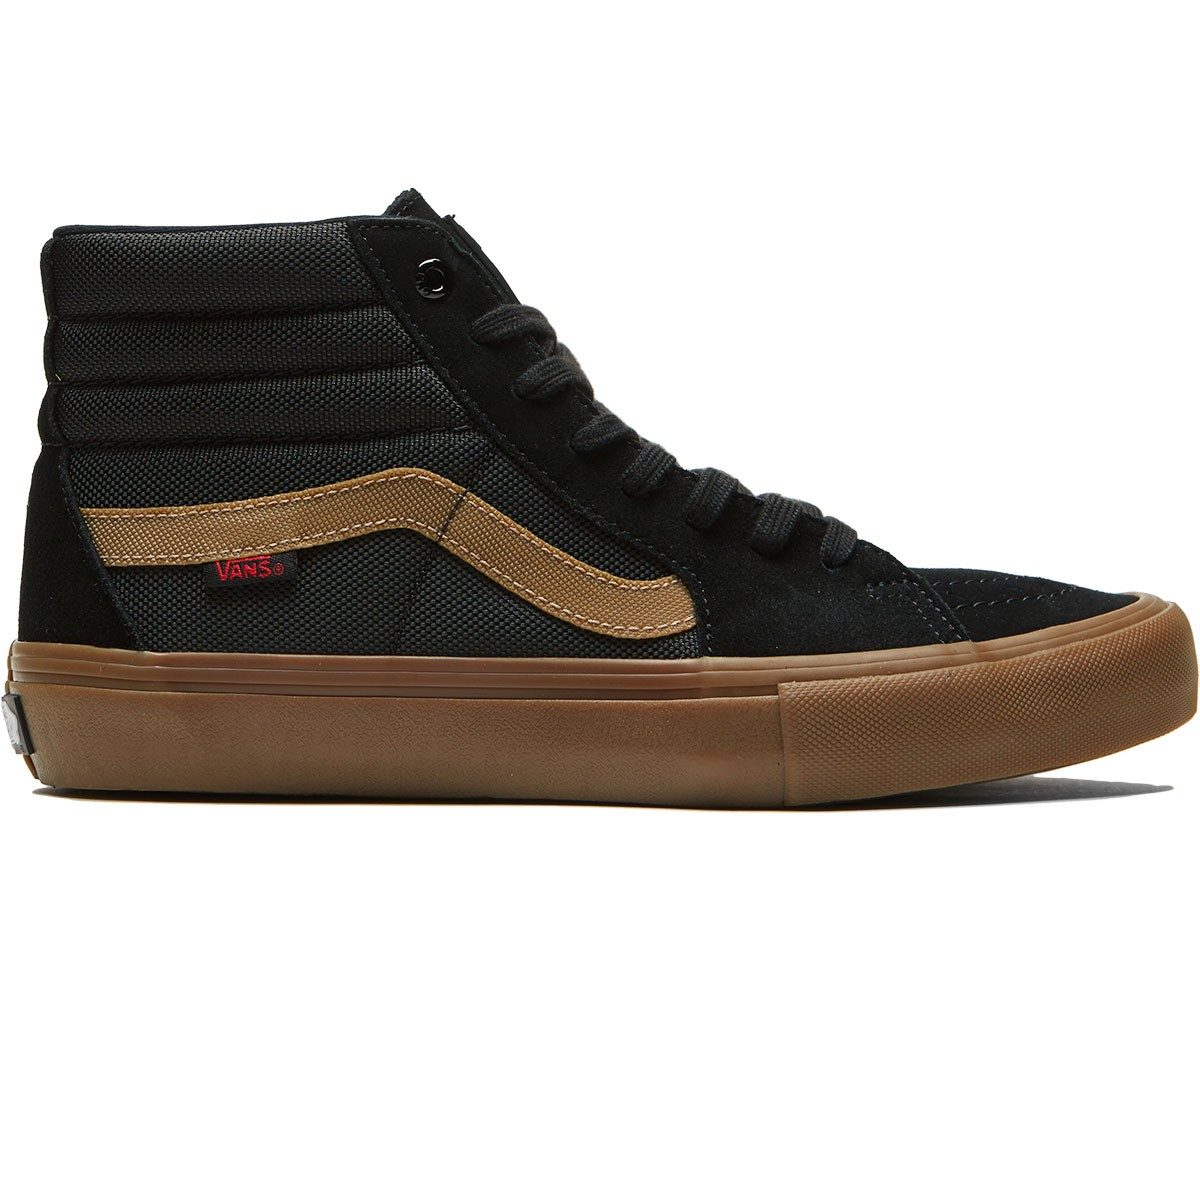 6949b631dd9ad2 Vans X Thrasher Sk8 Hi Pro Shoes - Thrasher Black Gum - 6.5